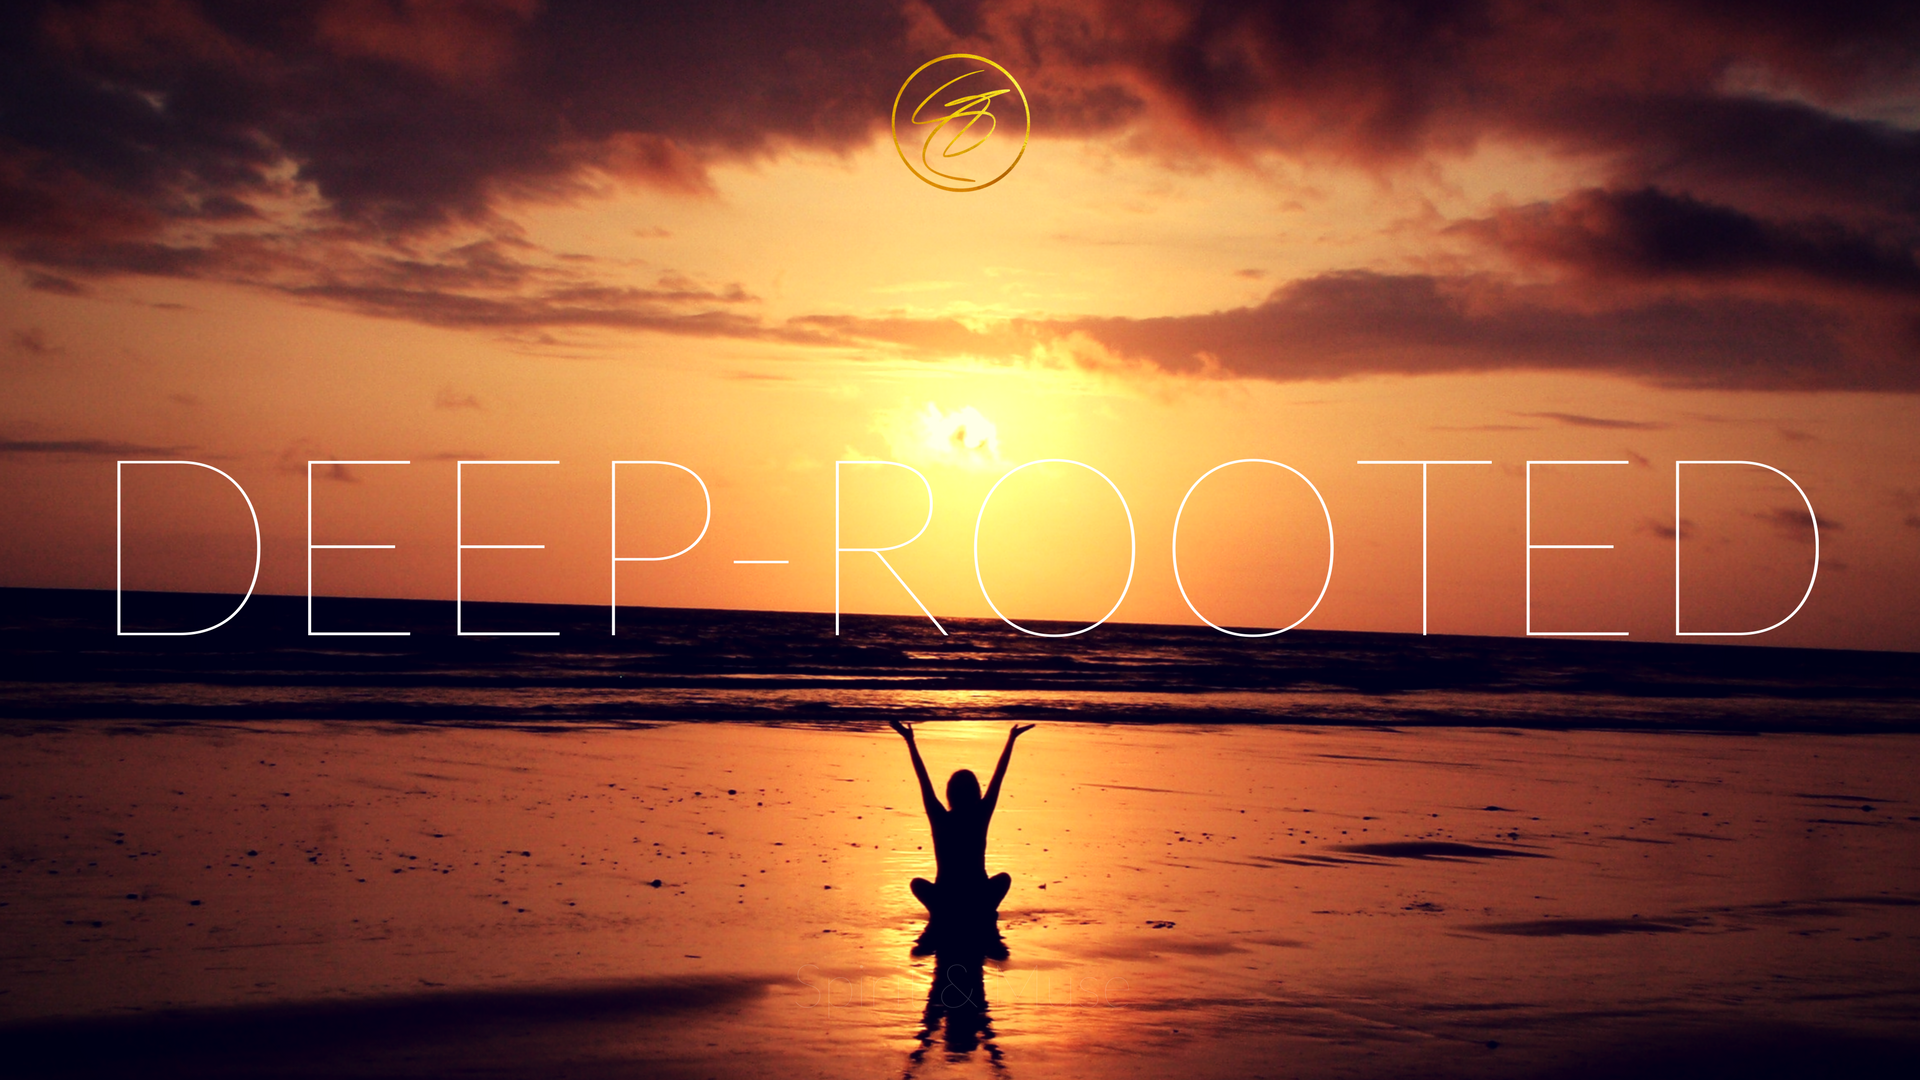 Deep-Rooted Core Desired Feeling Wallpaper